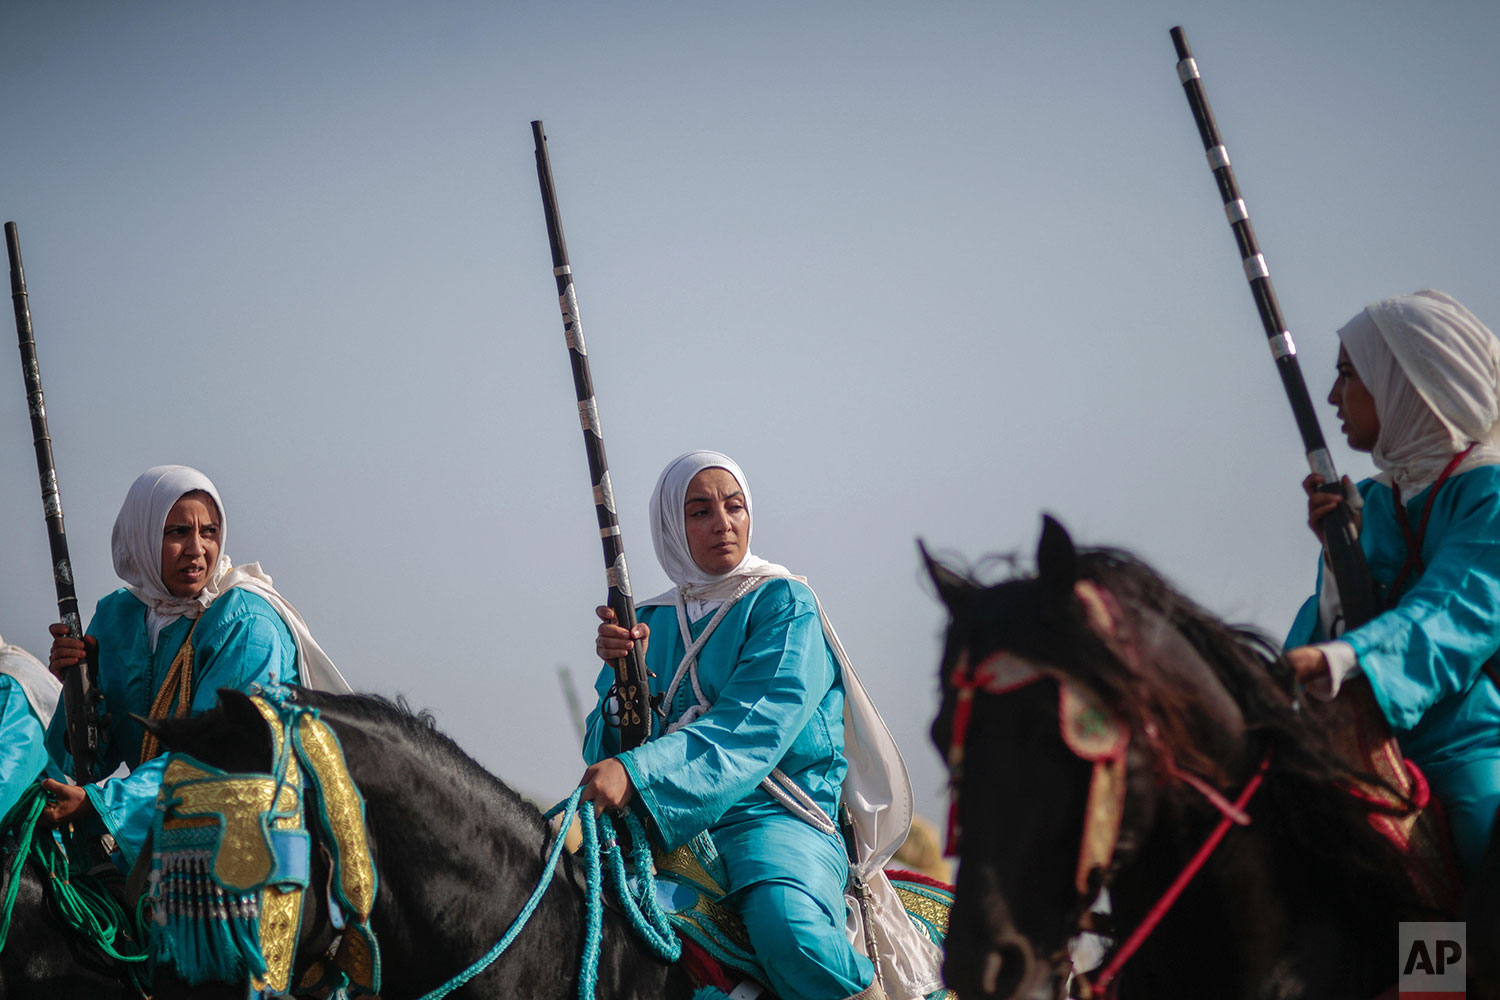 In this Thursday, July 25, 2019 photo, a female troupe prepares to take part in Tabourida, a traditional horse riding show also known as Fantasia, in the coastal town of El Jadida, Morocco.  (AP Photo/Mosa'ab Elshamy)